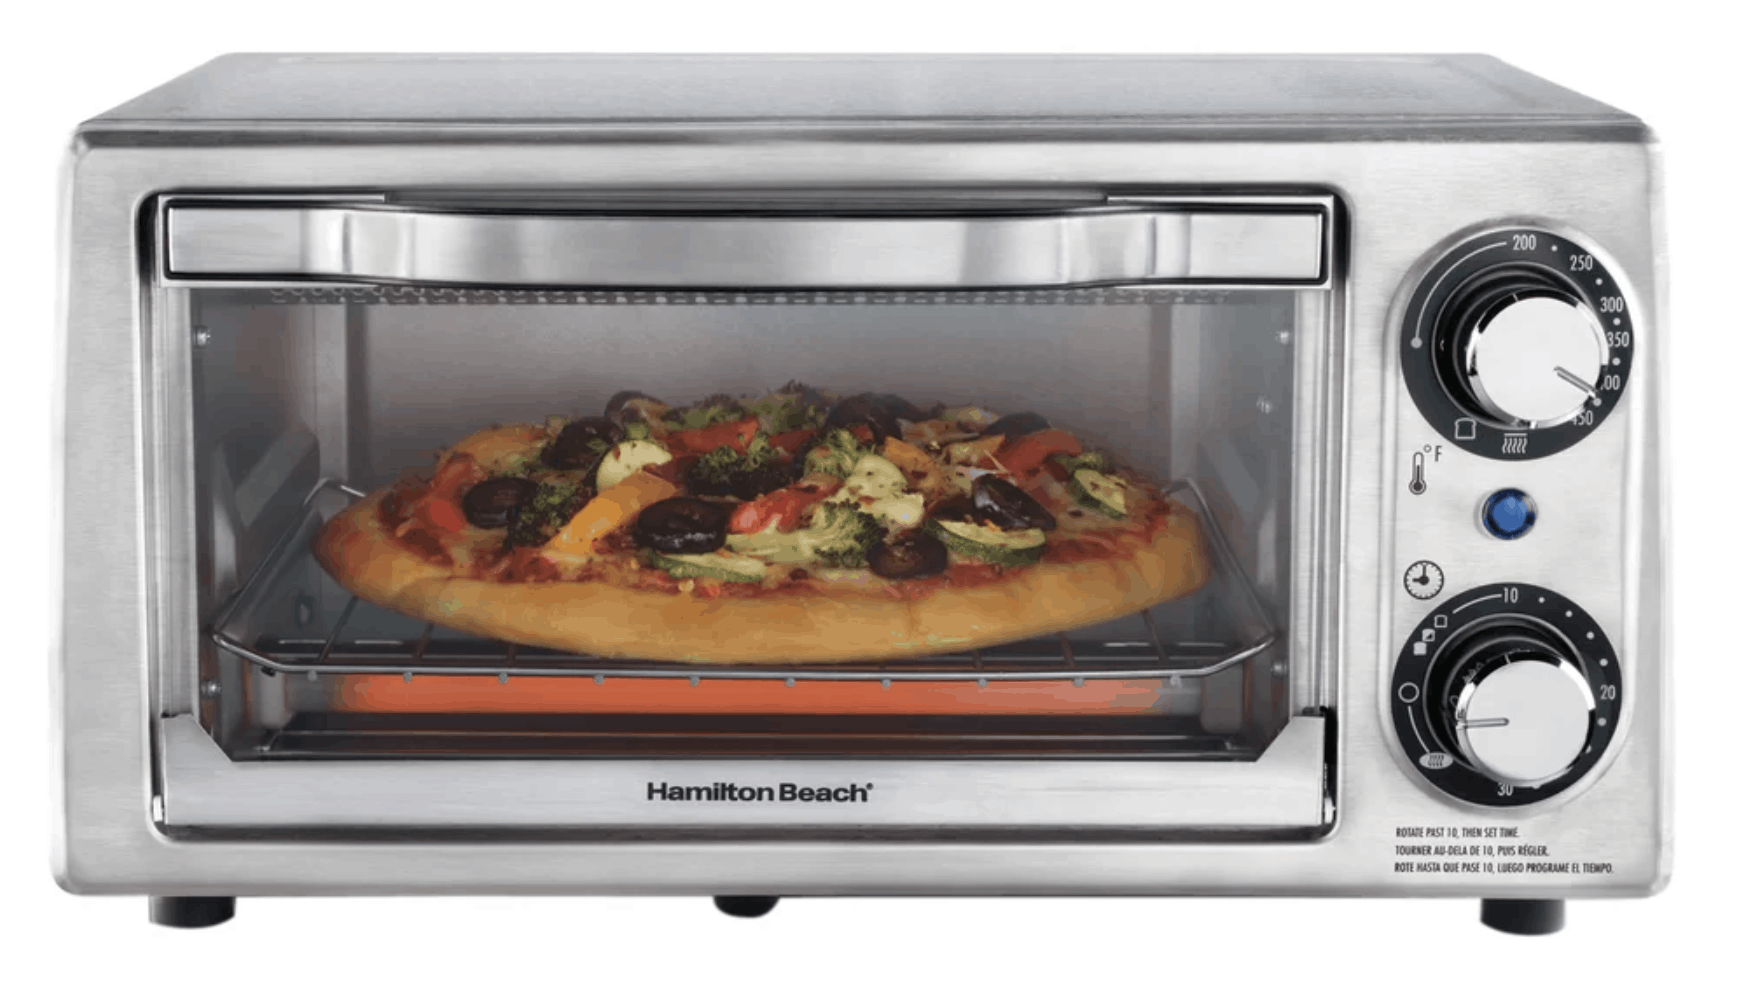 Narrow stainless steel toaster oven by Hamilton Beach